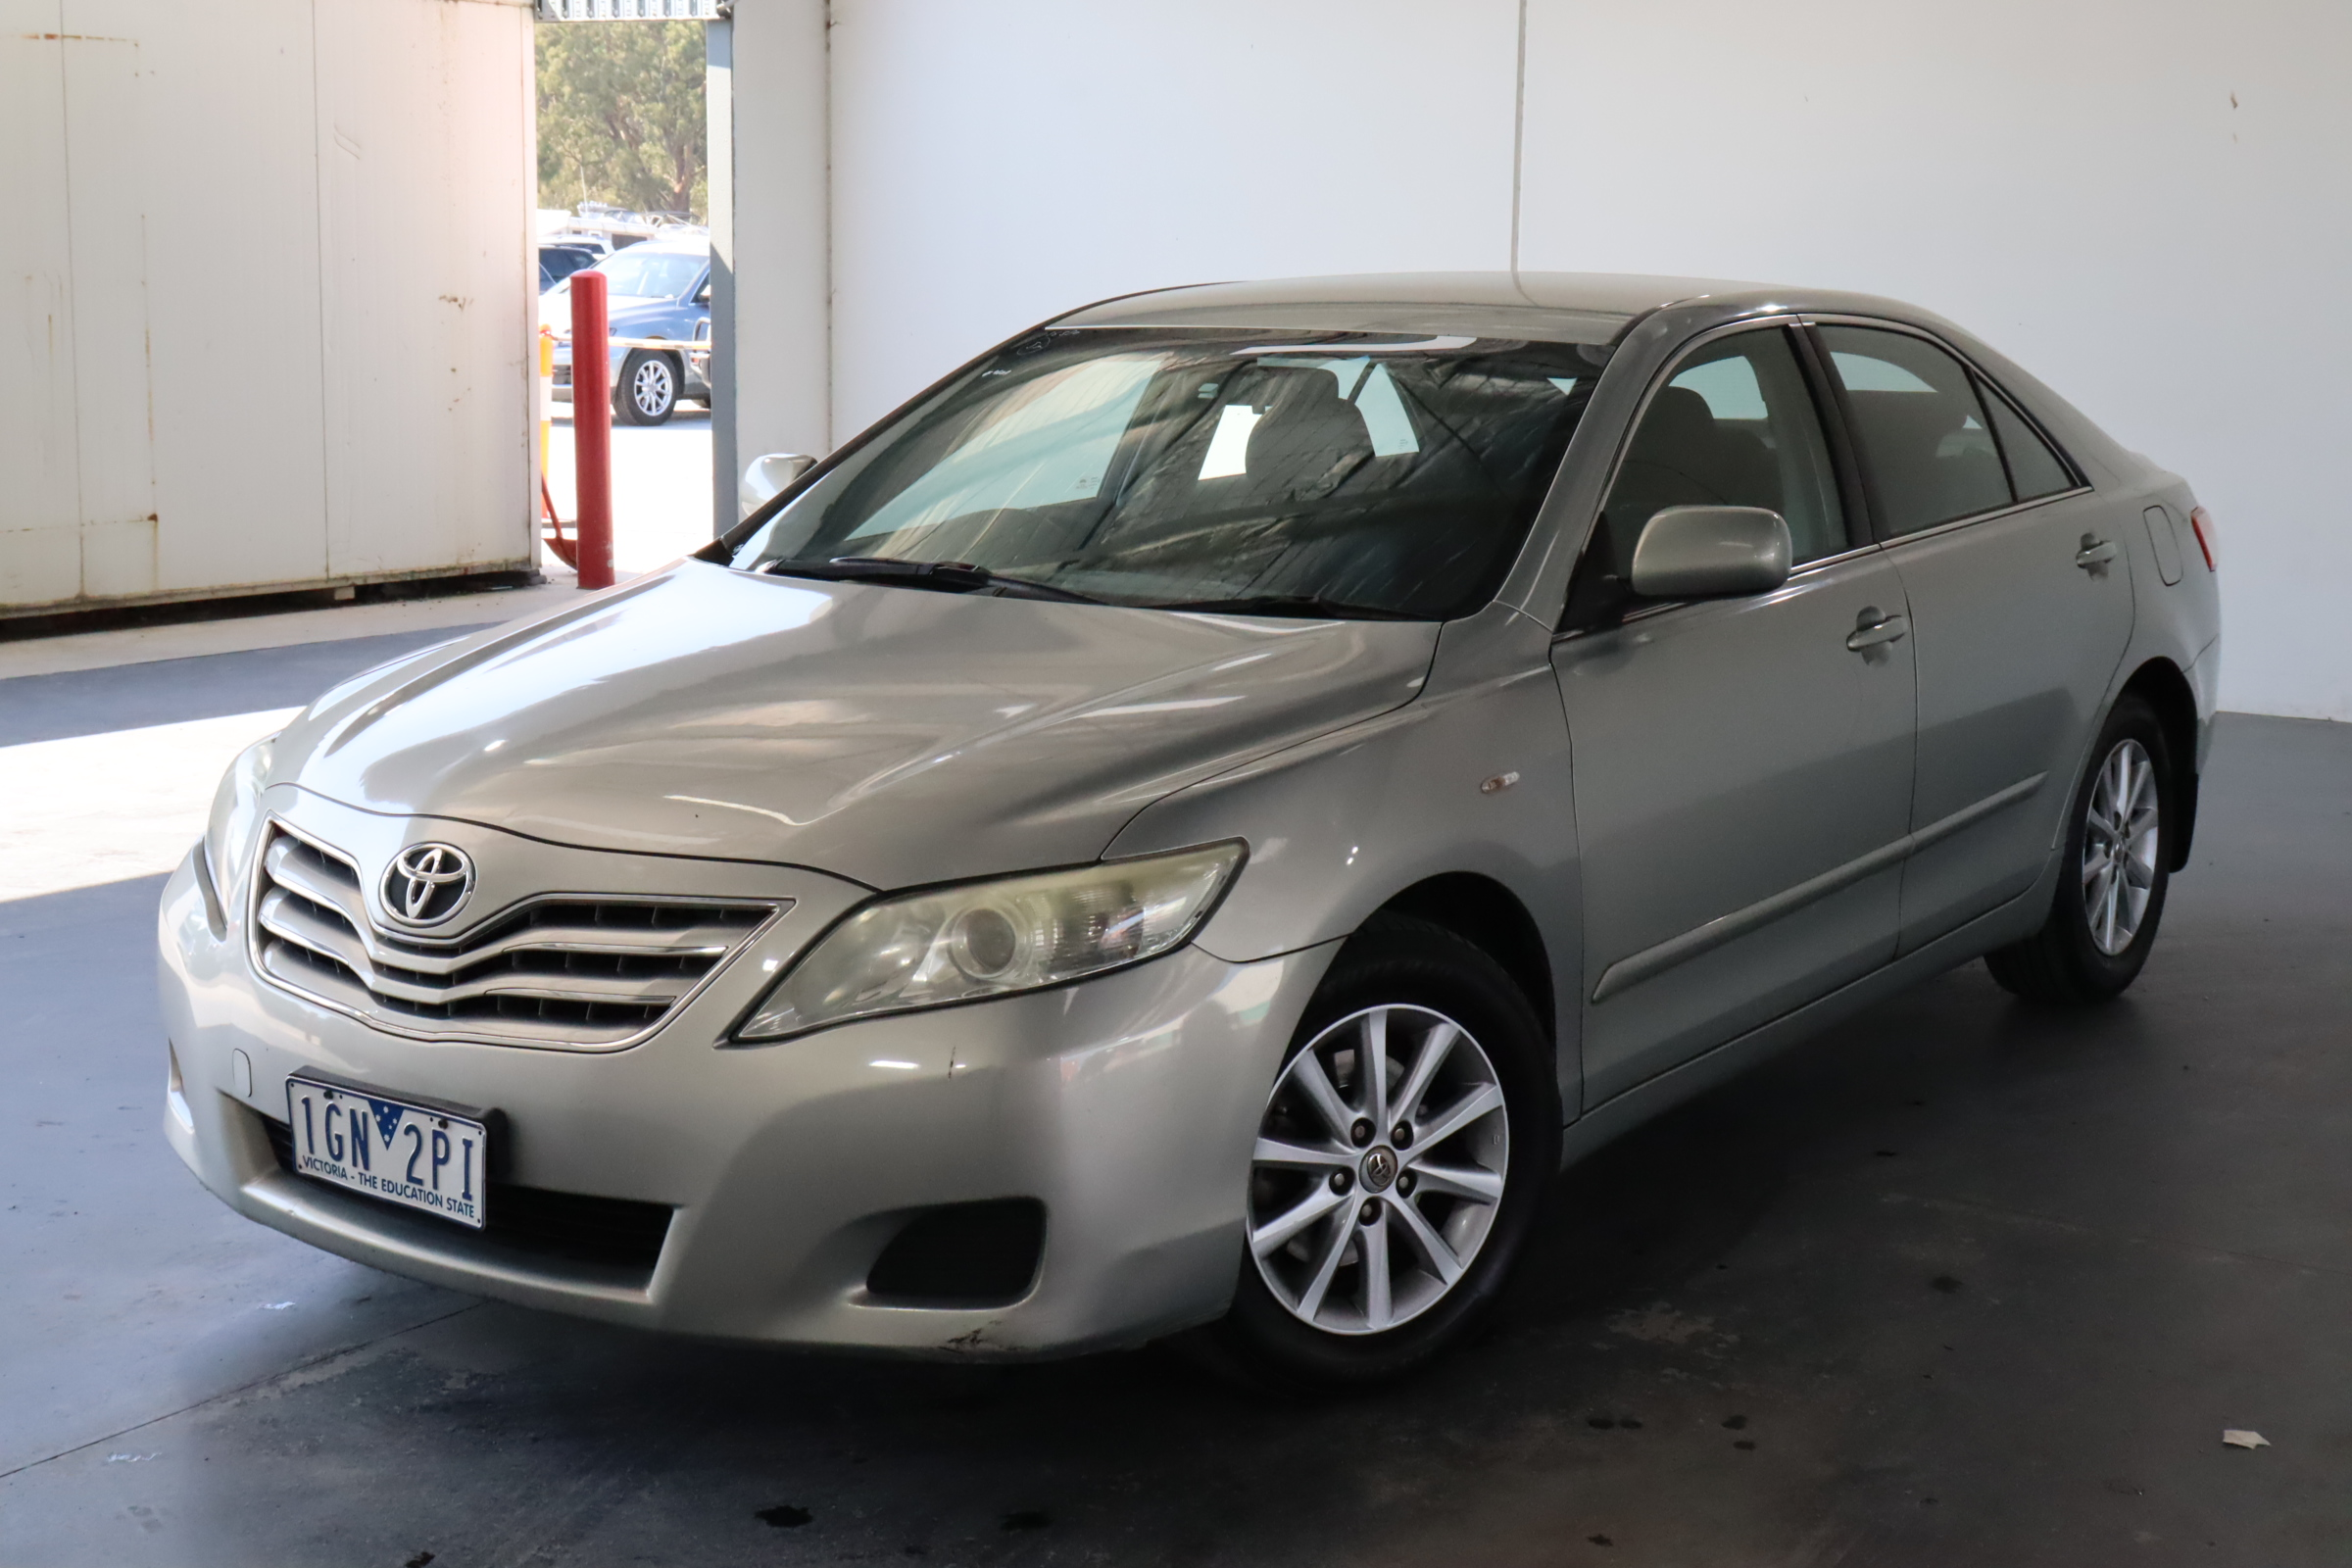 2010 Toyota Camry Altise ACV40R Automatic Sedan WOVR+Insp